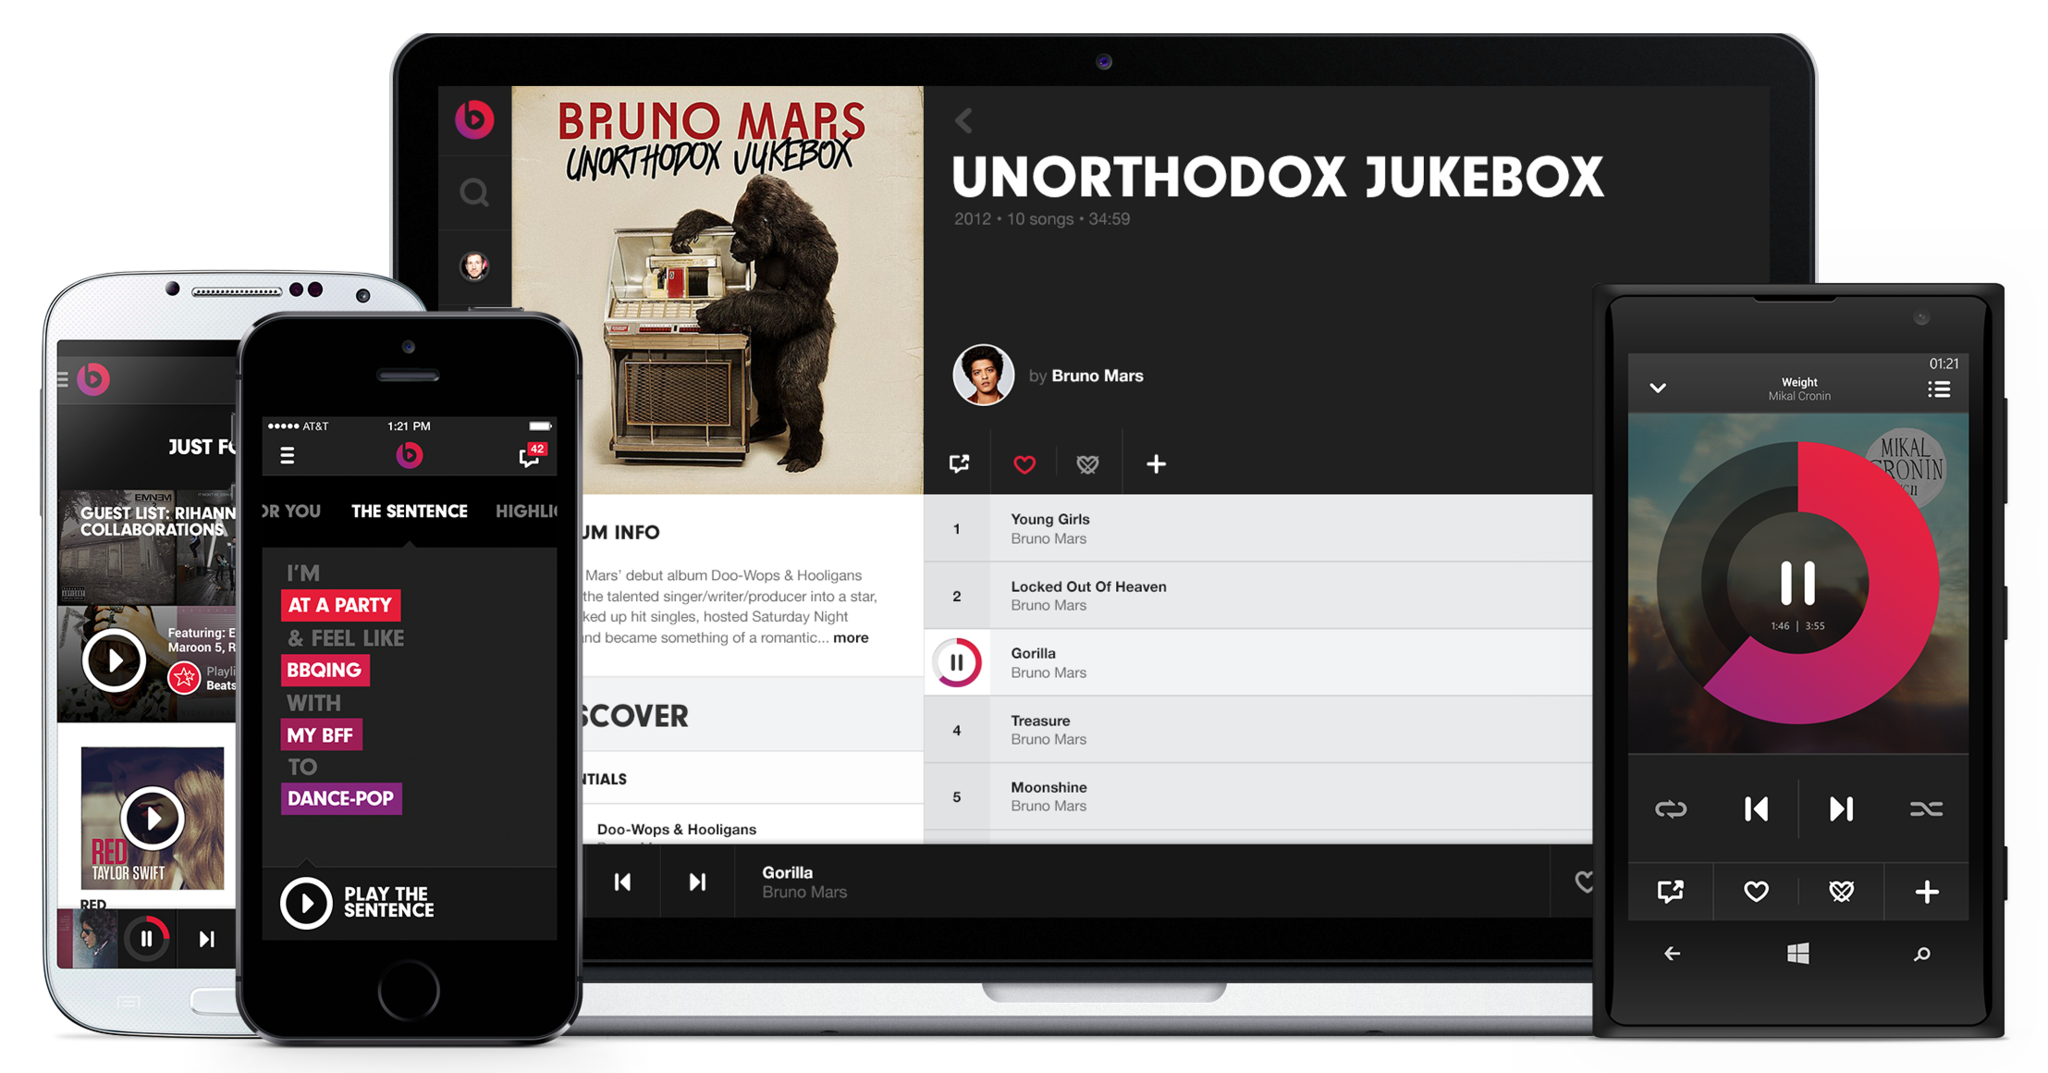 Internet on-demand music service Beats Music, launched in January by headphone maker Beats Electronics, is buying Topspin Media.